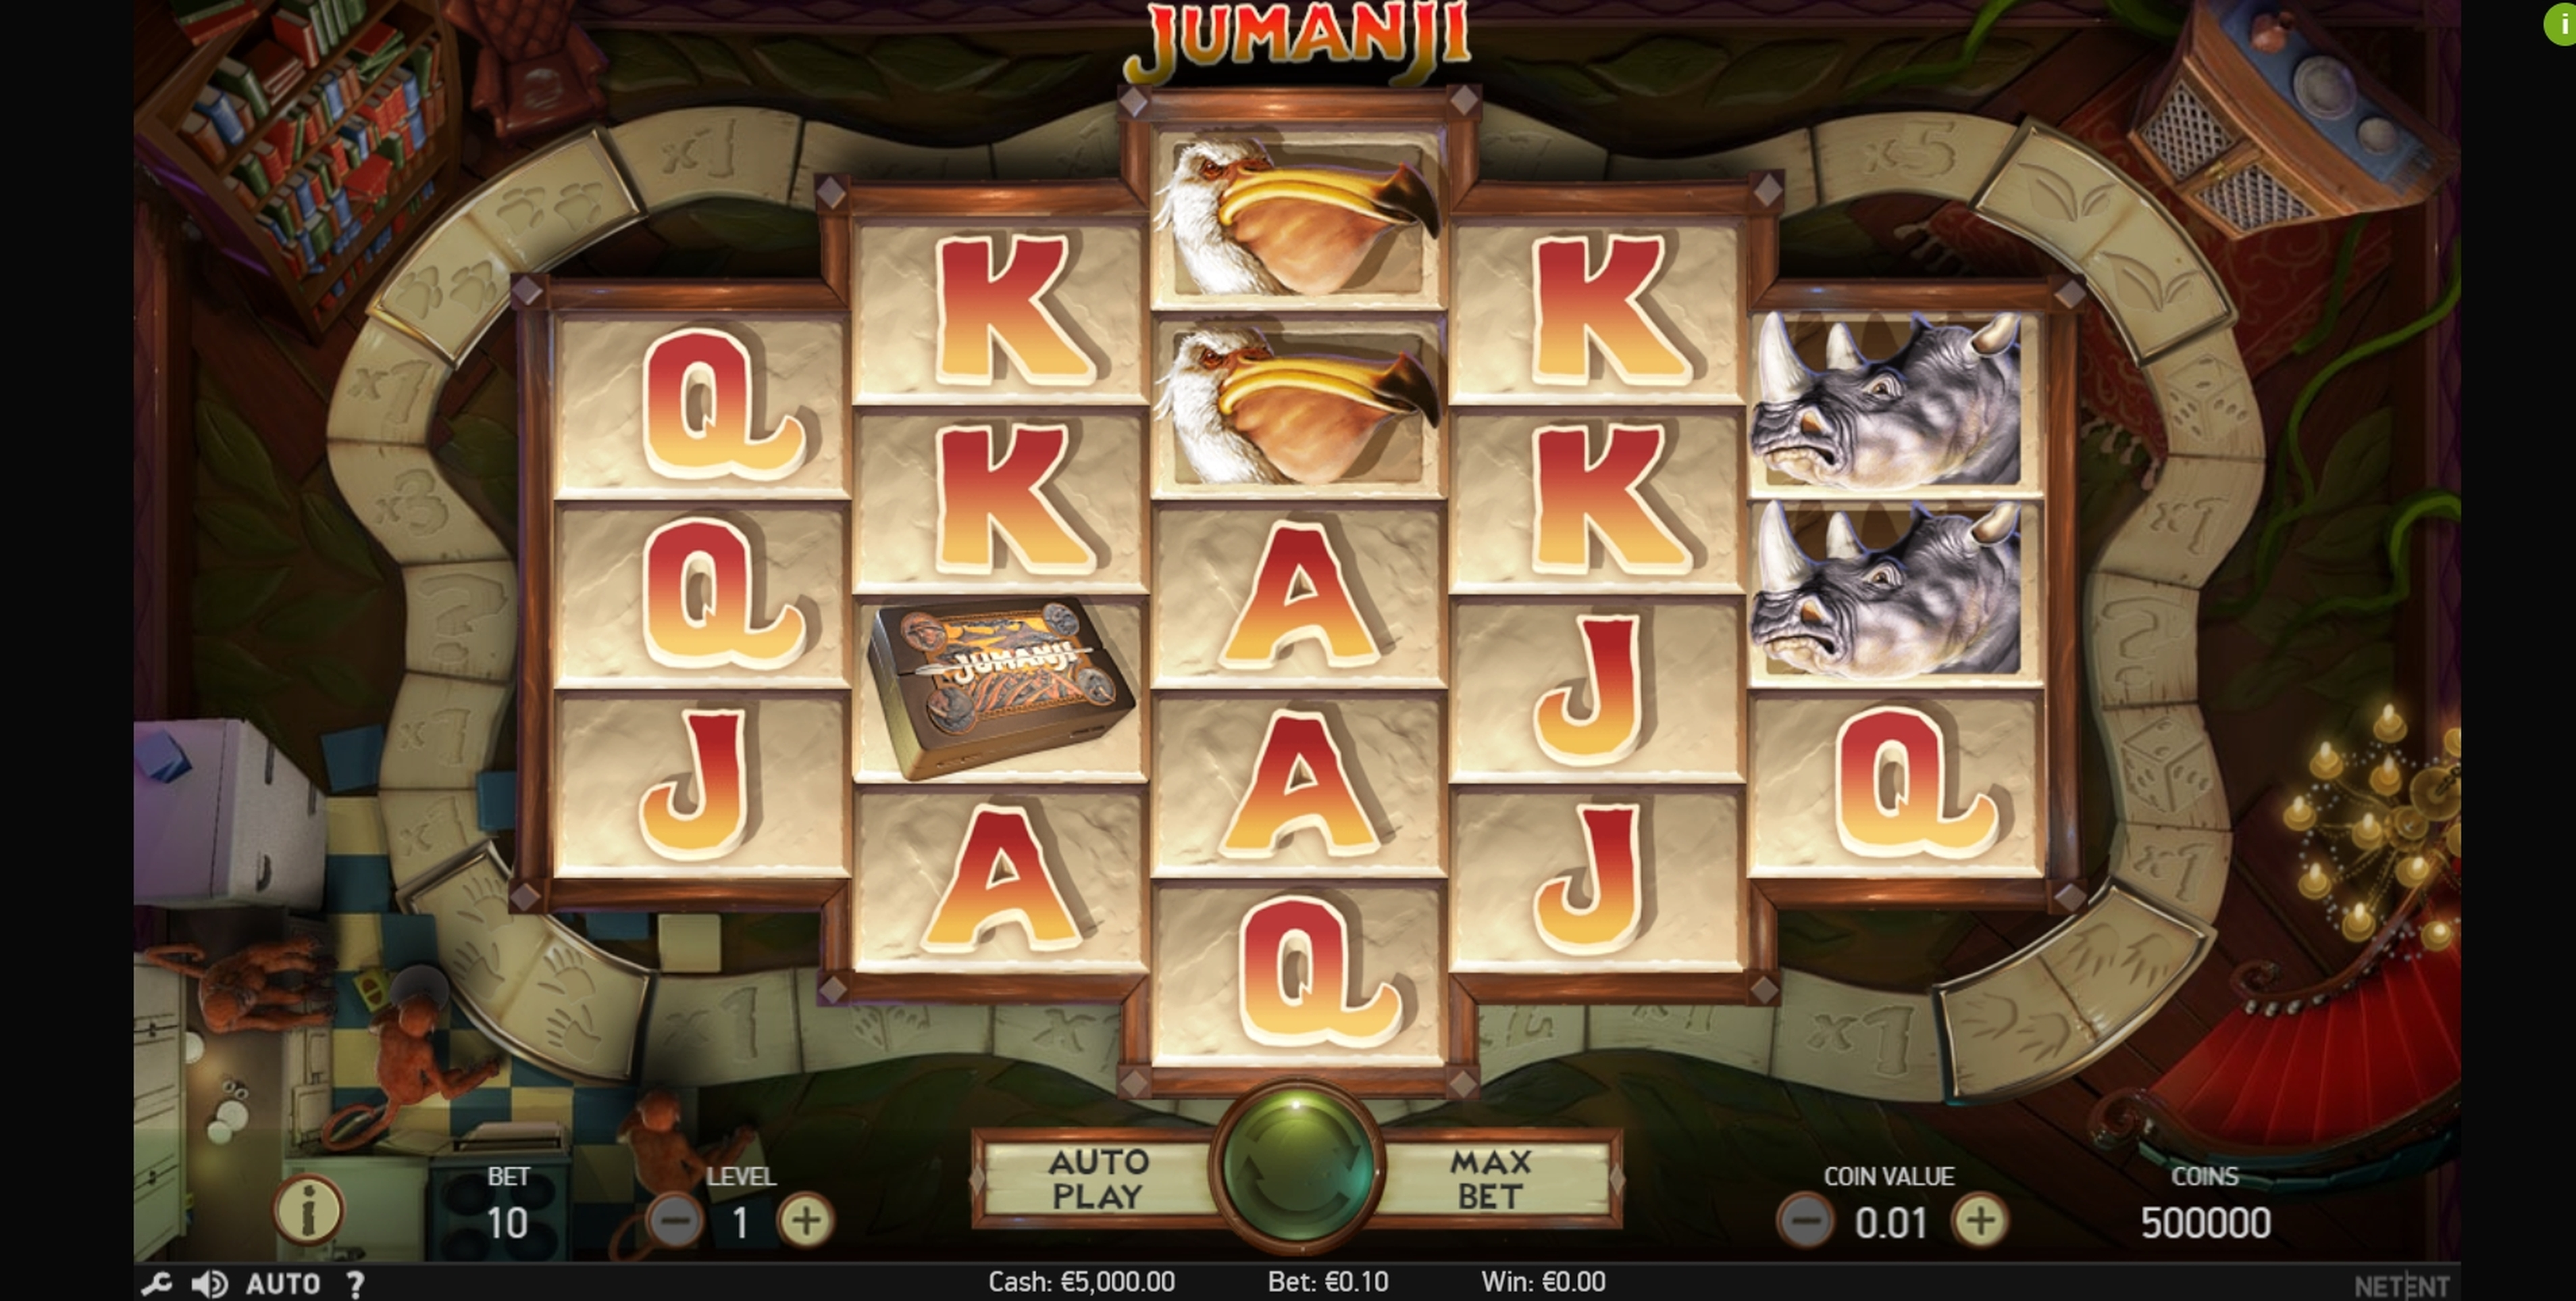 Reels in Jumanji Slot Game by NetEnt